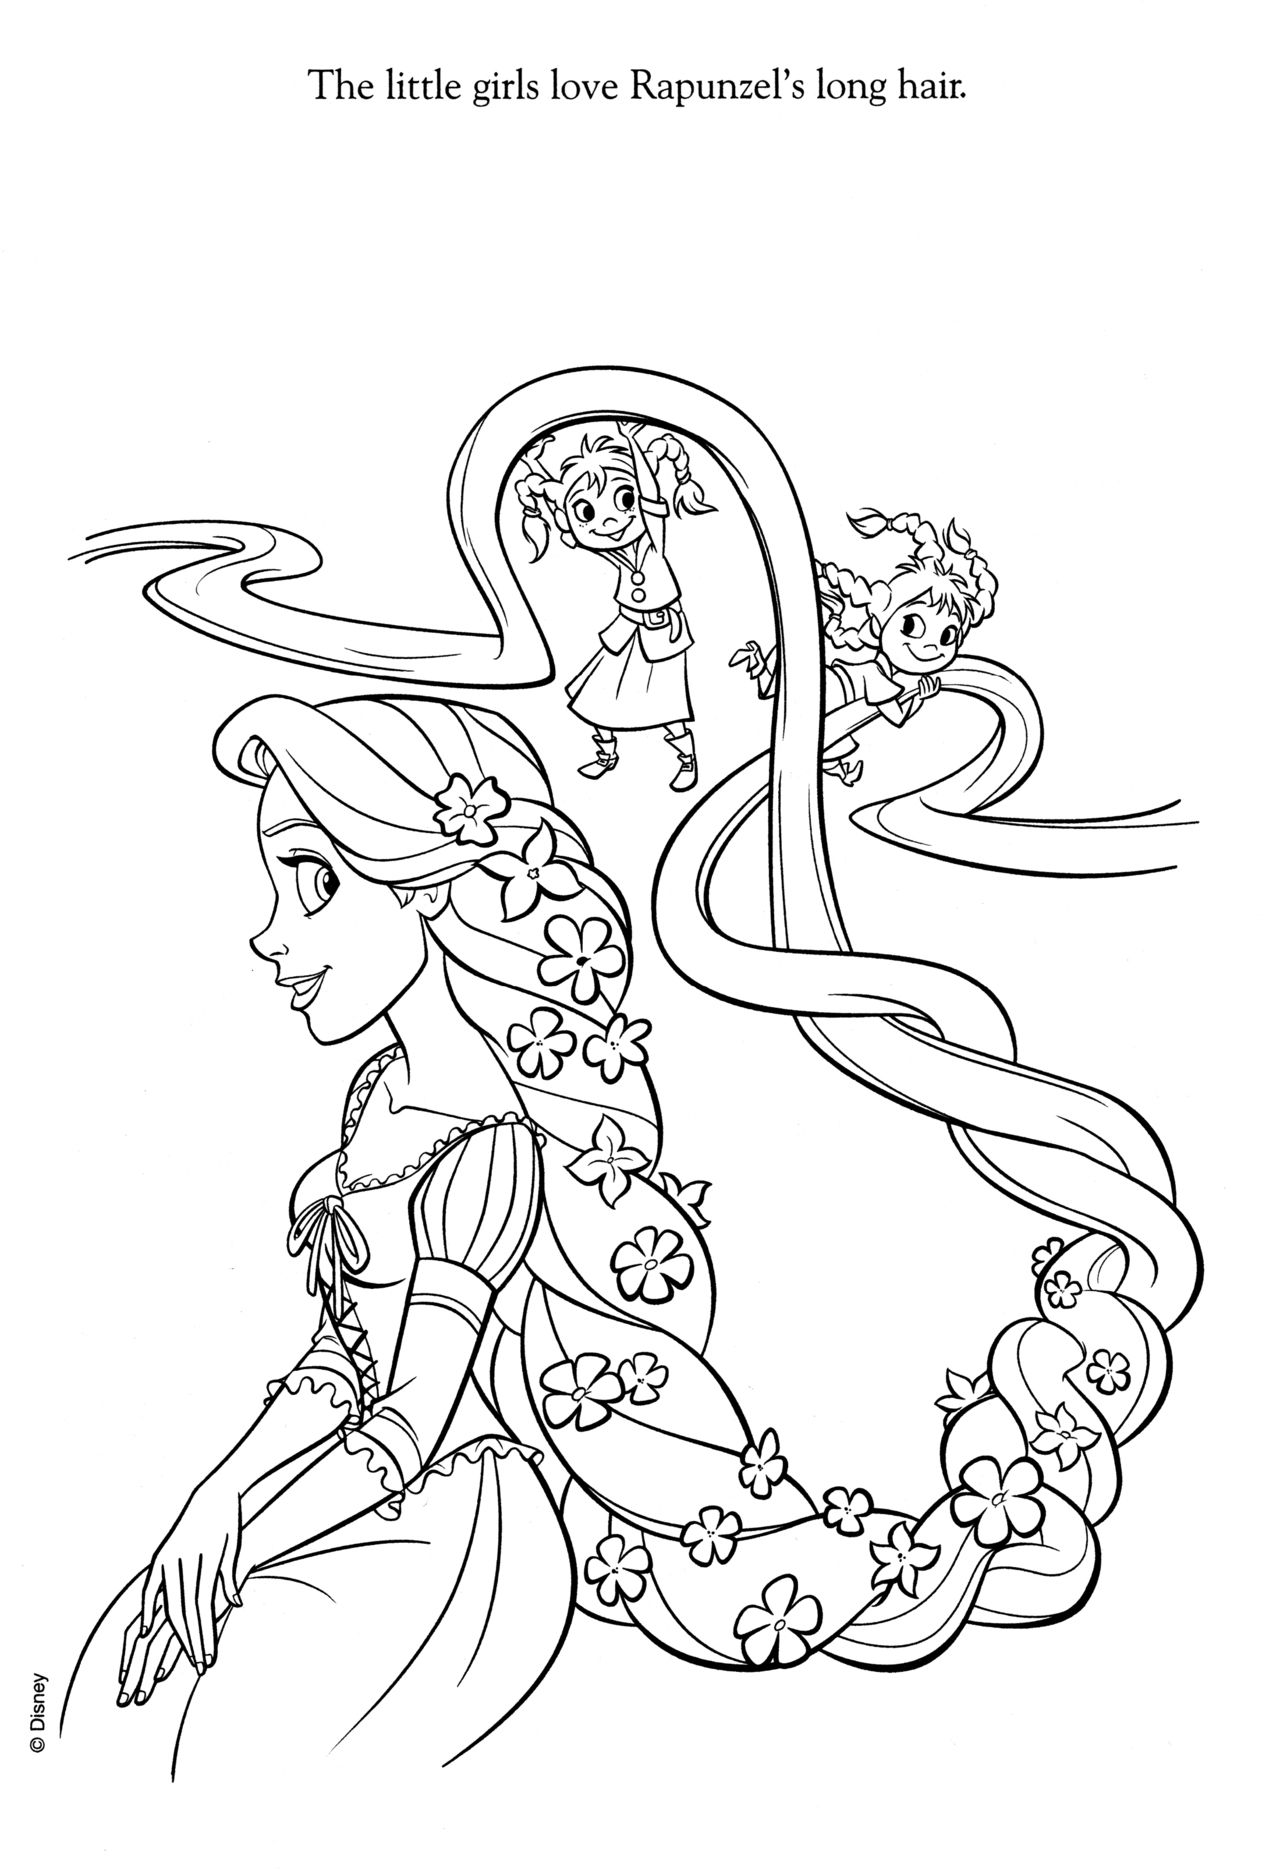 Disney Coloring Pages | Coloring book pages 2 | Pinterest | Colorear ...